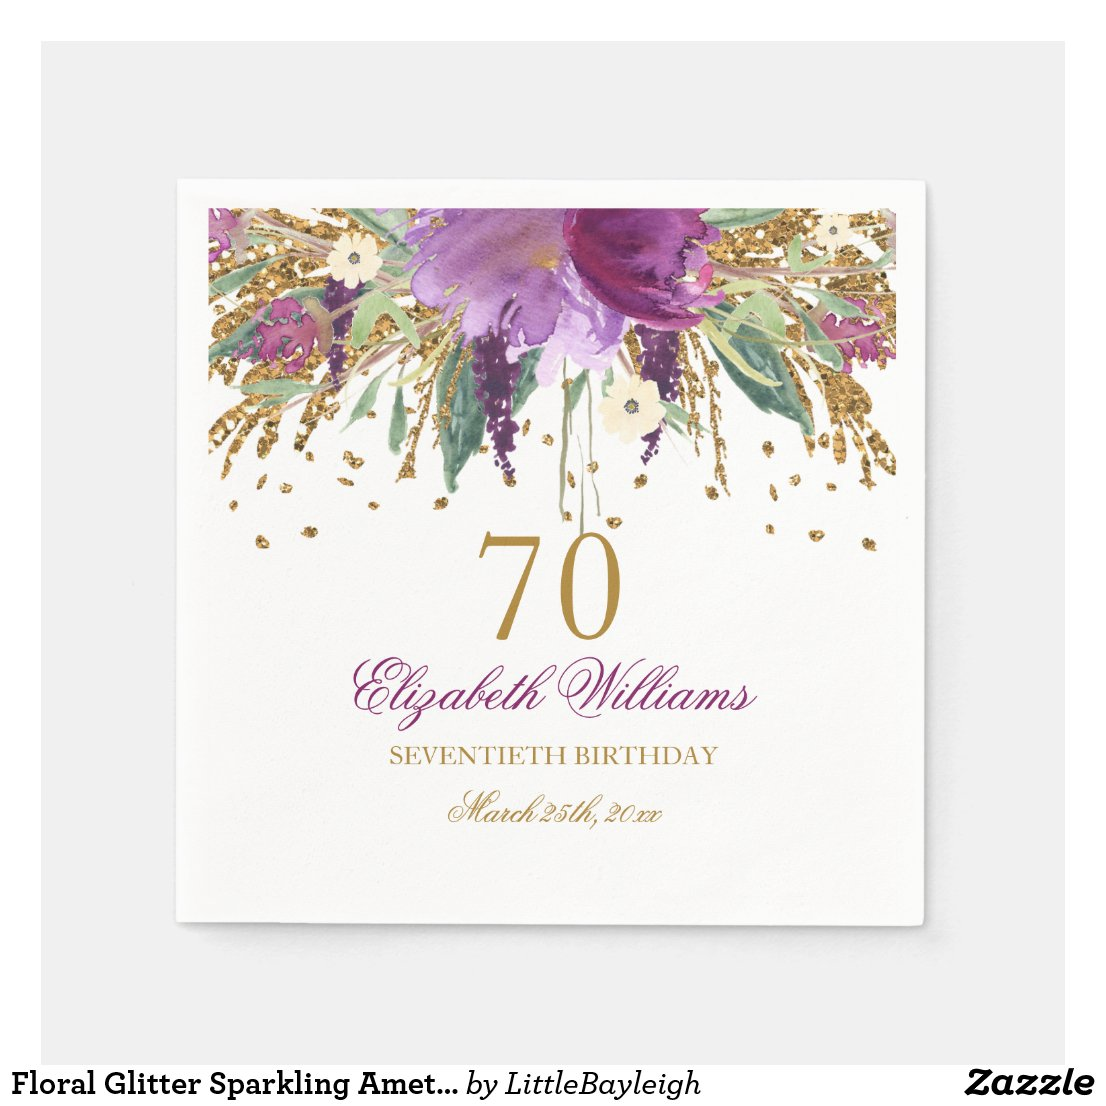 Floral Glitter Sparkling Amethyst 70th Birthday Disposable Napkin